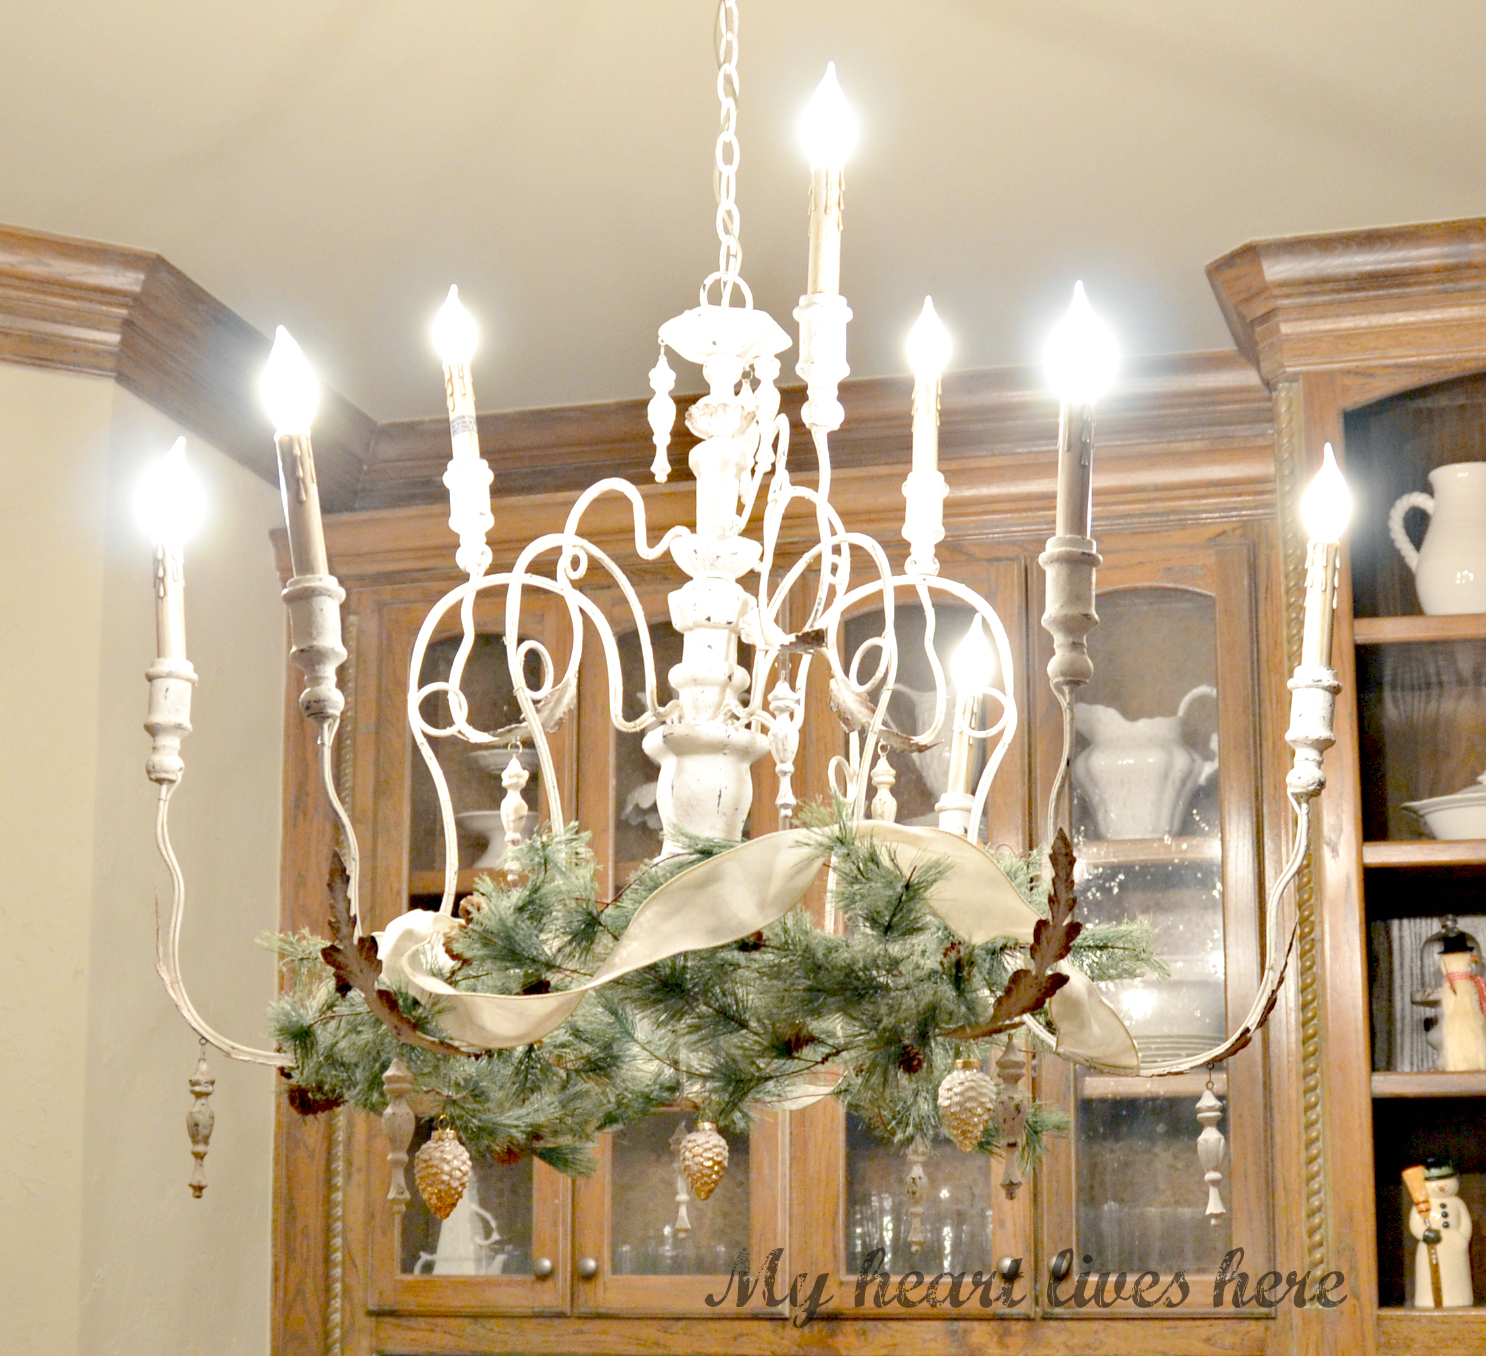 All I Knew Was That Wanted Something Light And Airy For This Breakfast Room Fixture